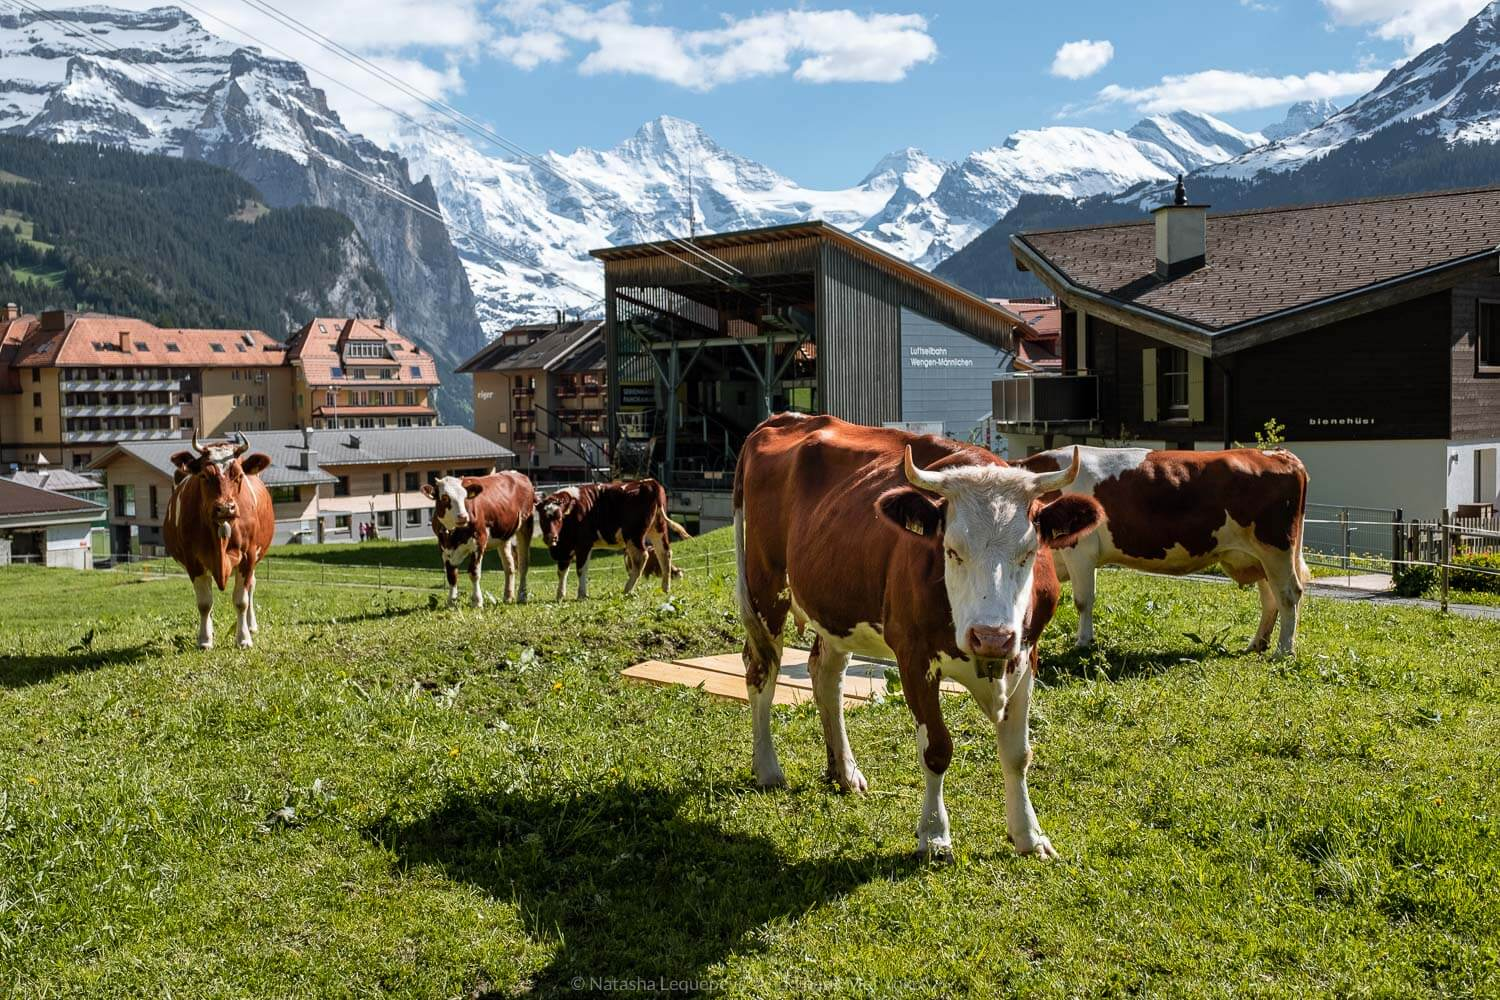 """Cows grazing in a field, Wengen, Switzerland. Travel photography and guide by © Natasha Lequepeys for """"And Then I Met Yoko"""". #wengen #switzerland #jungfrau #travelphotography"""